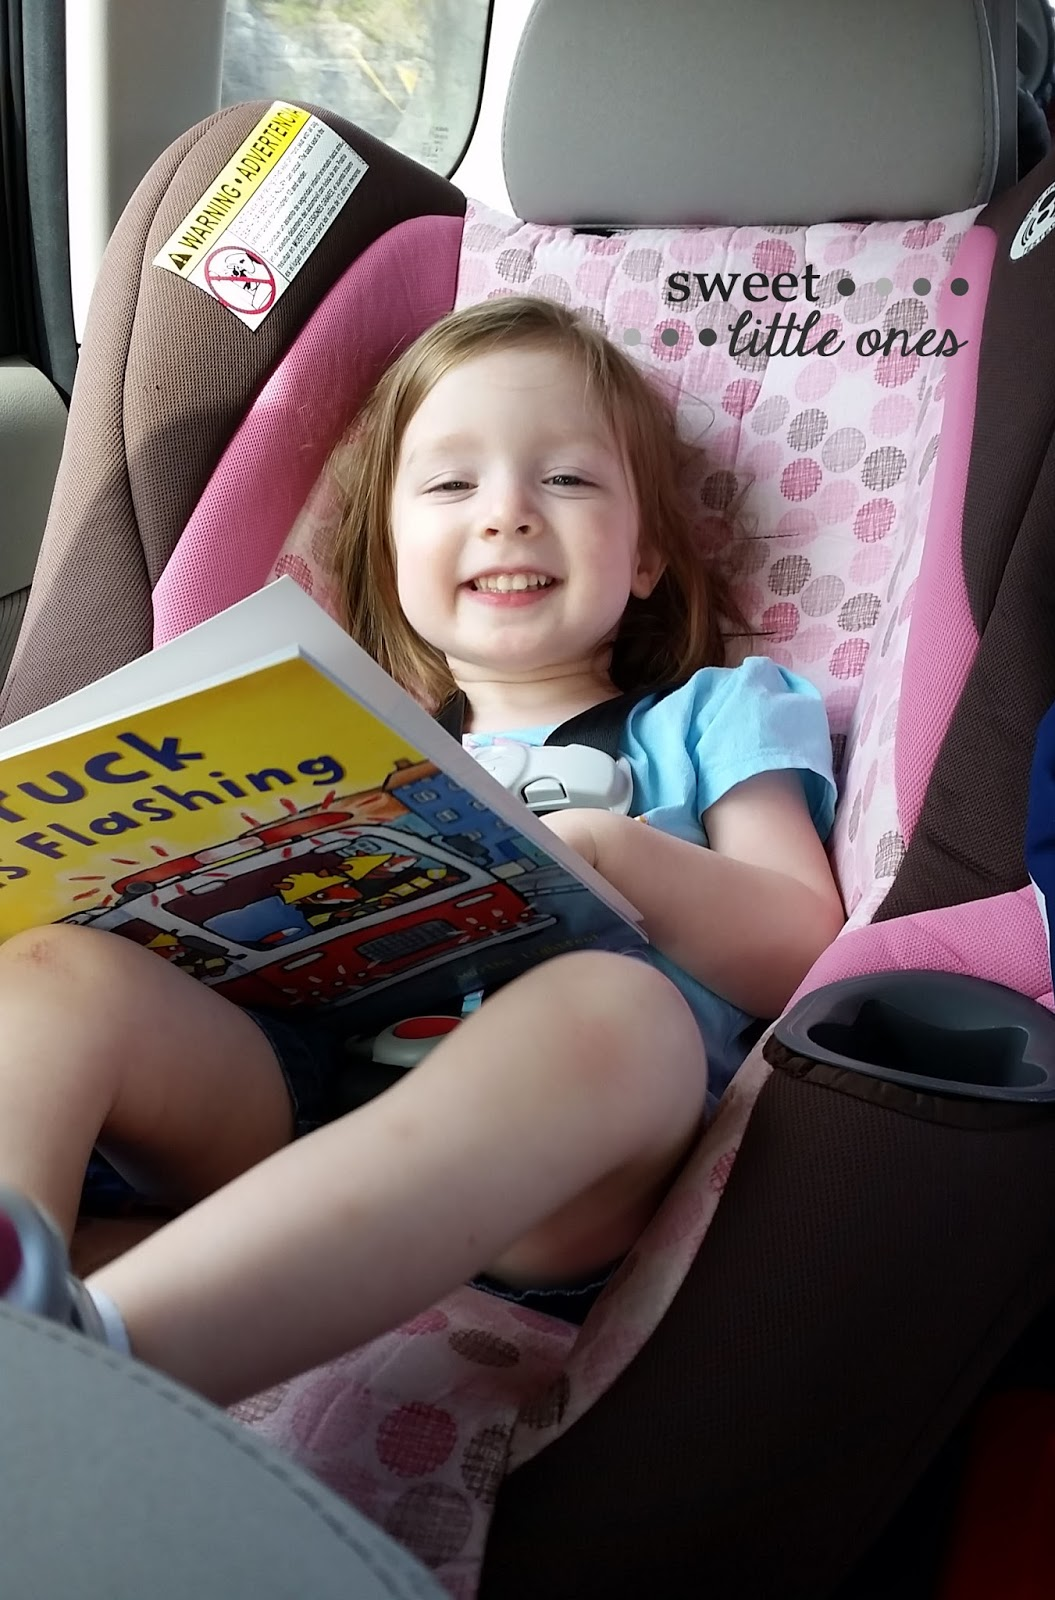 Planning a Road Trip with Kids - Favorites for a long car ride with little ones - www.sweetlittleonesblog.com